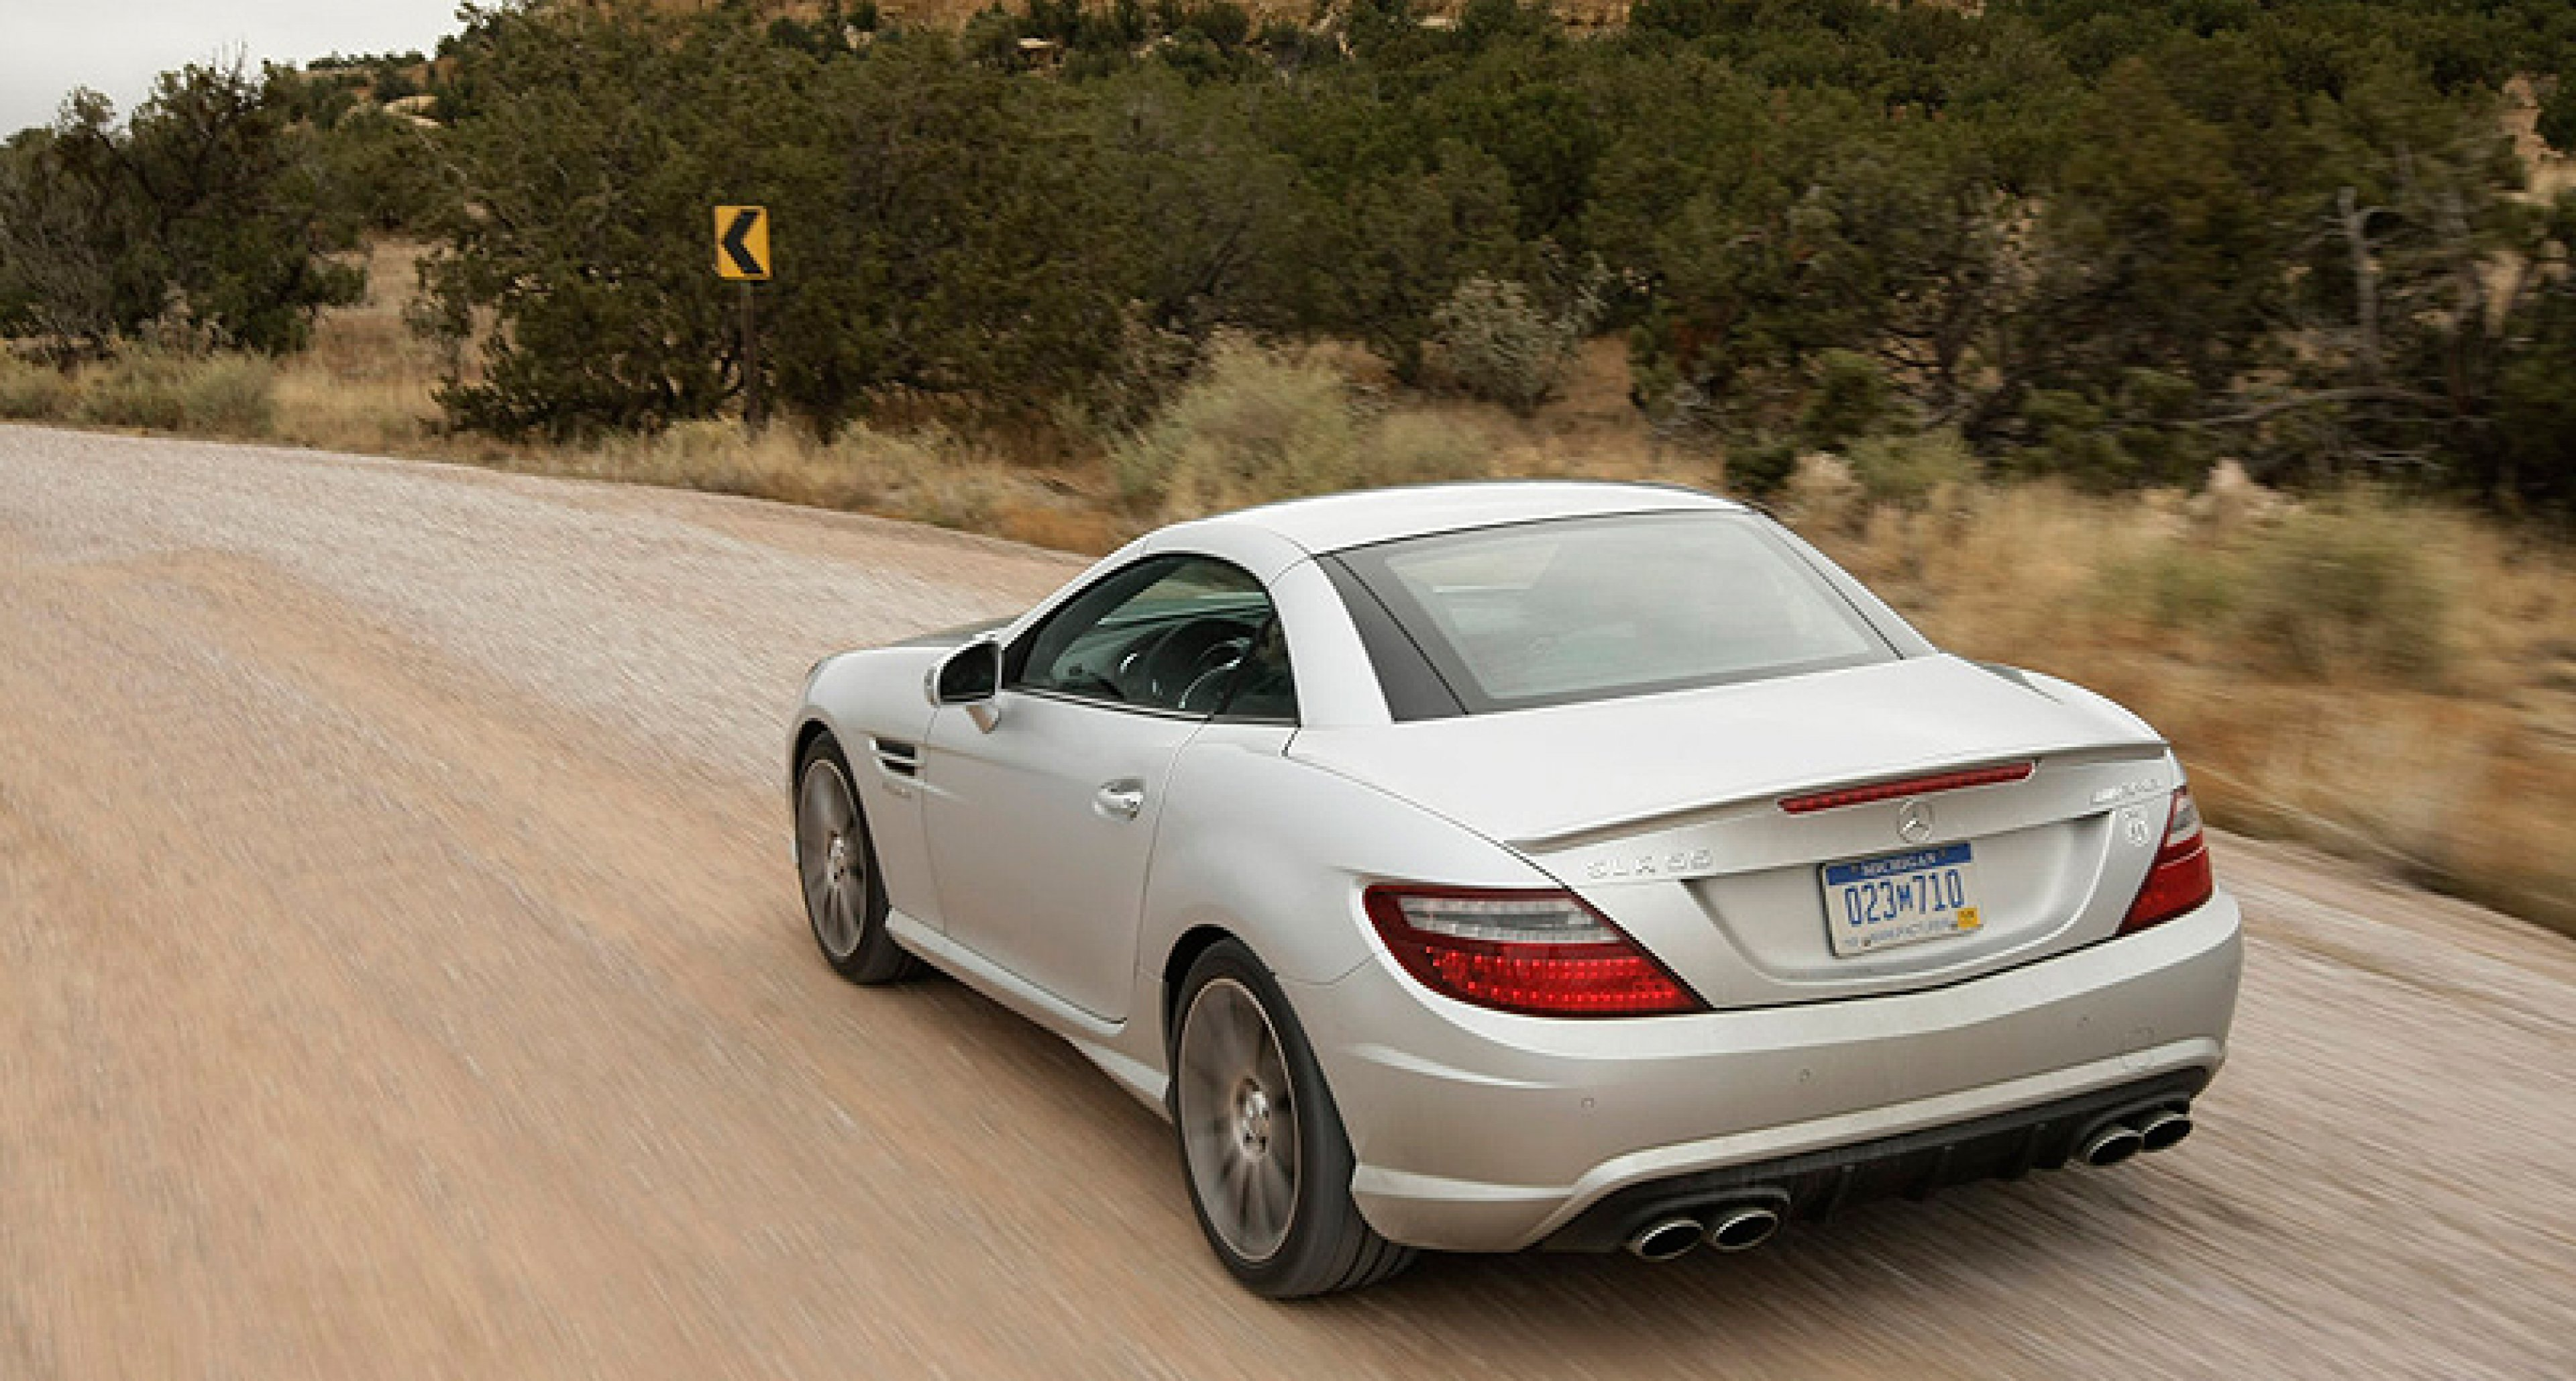 The Mercedes SLK 55 AMG on Route 66: Road of Hope